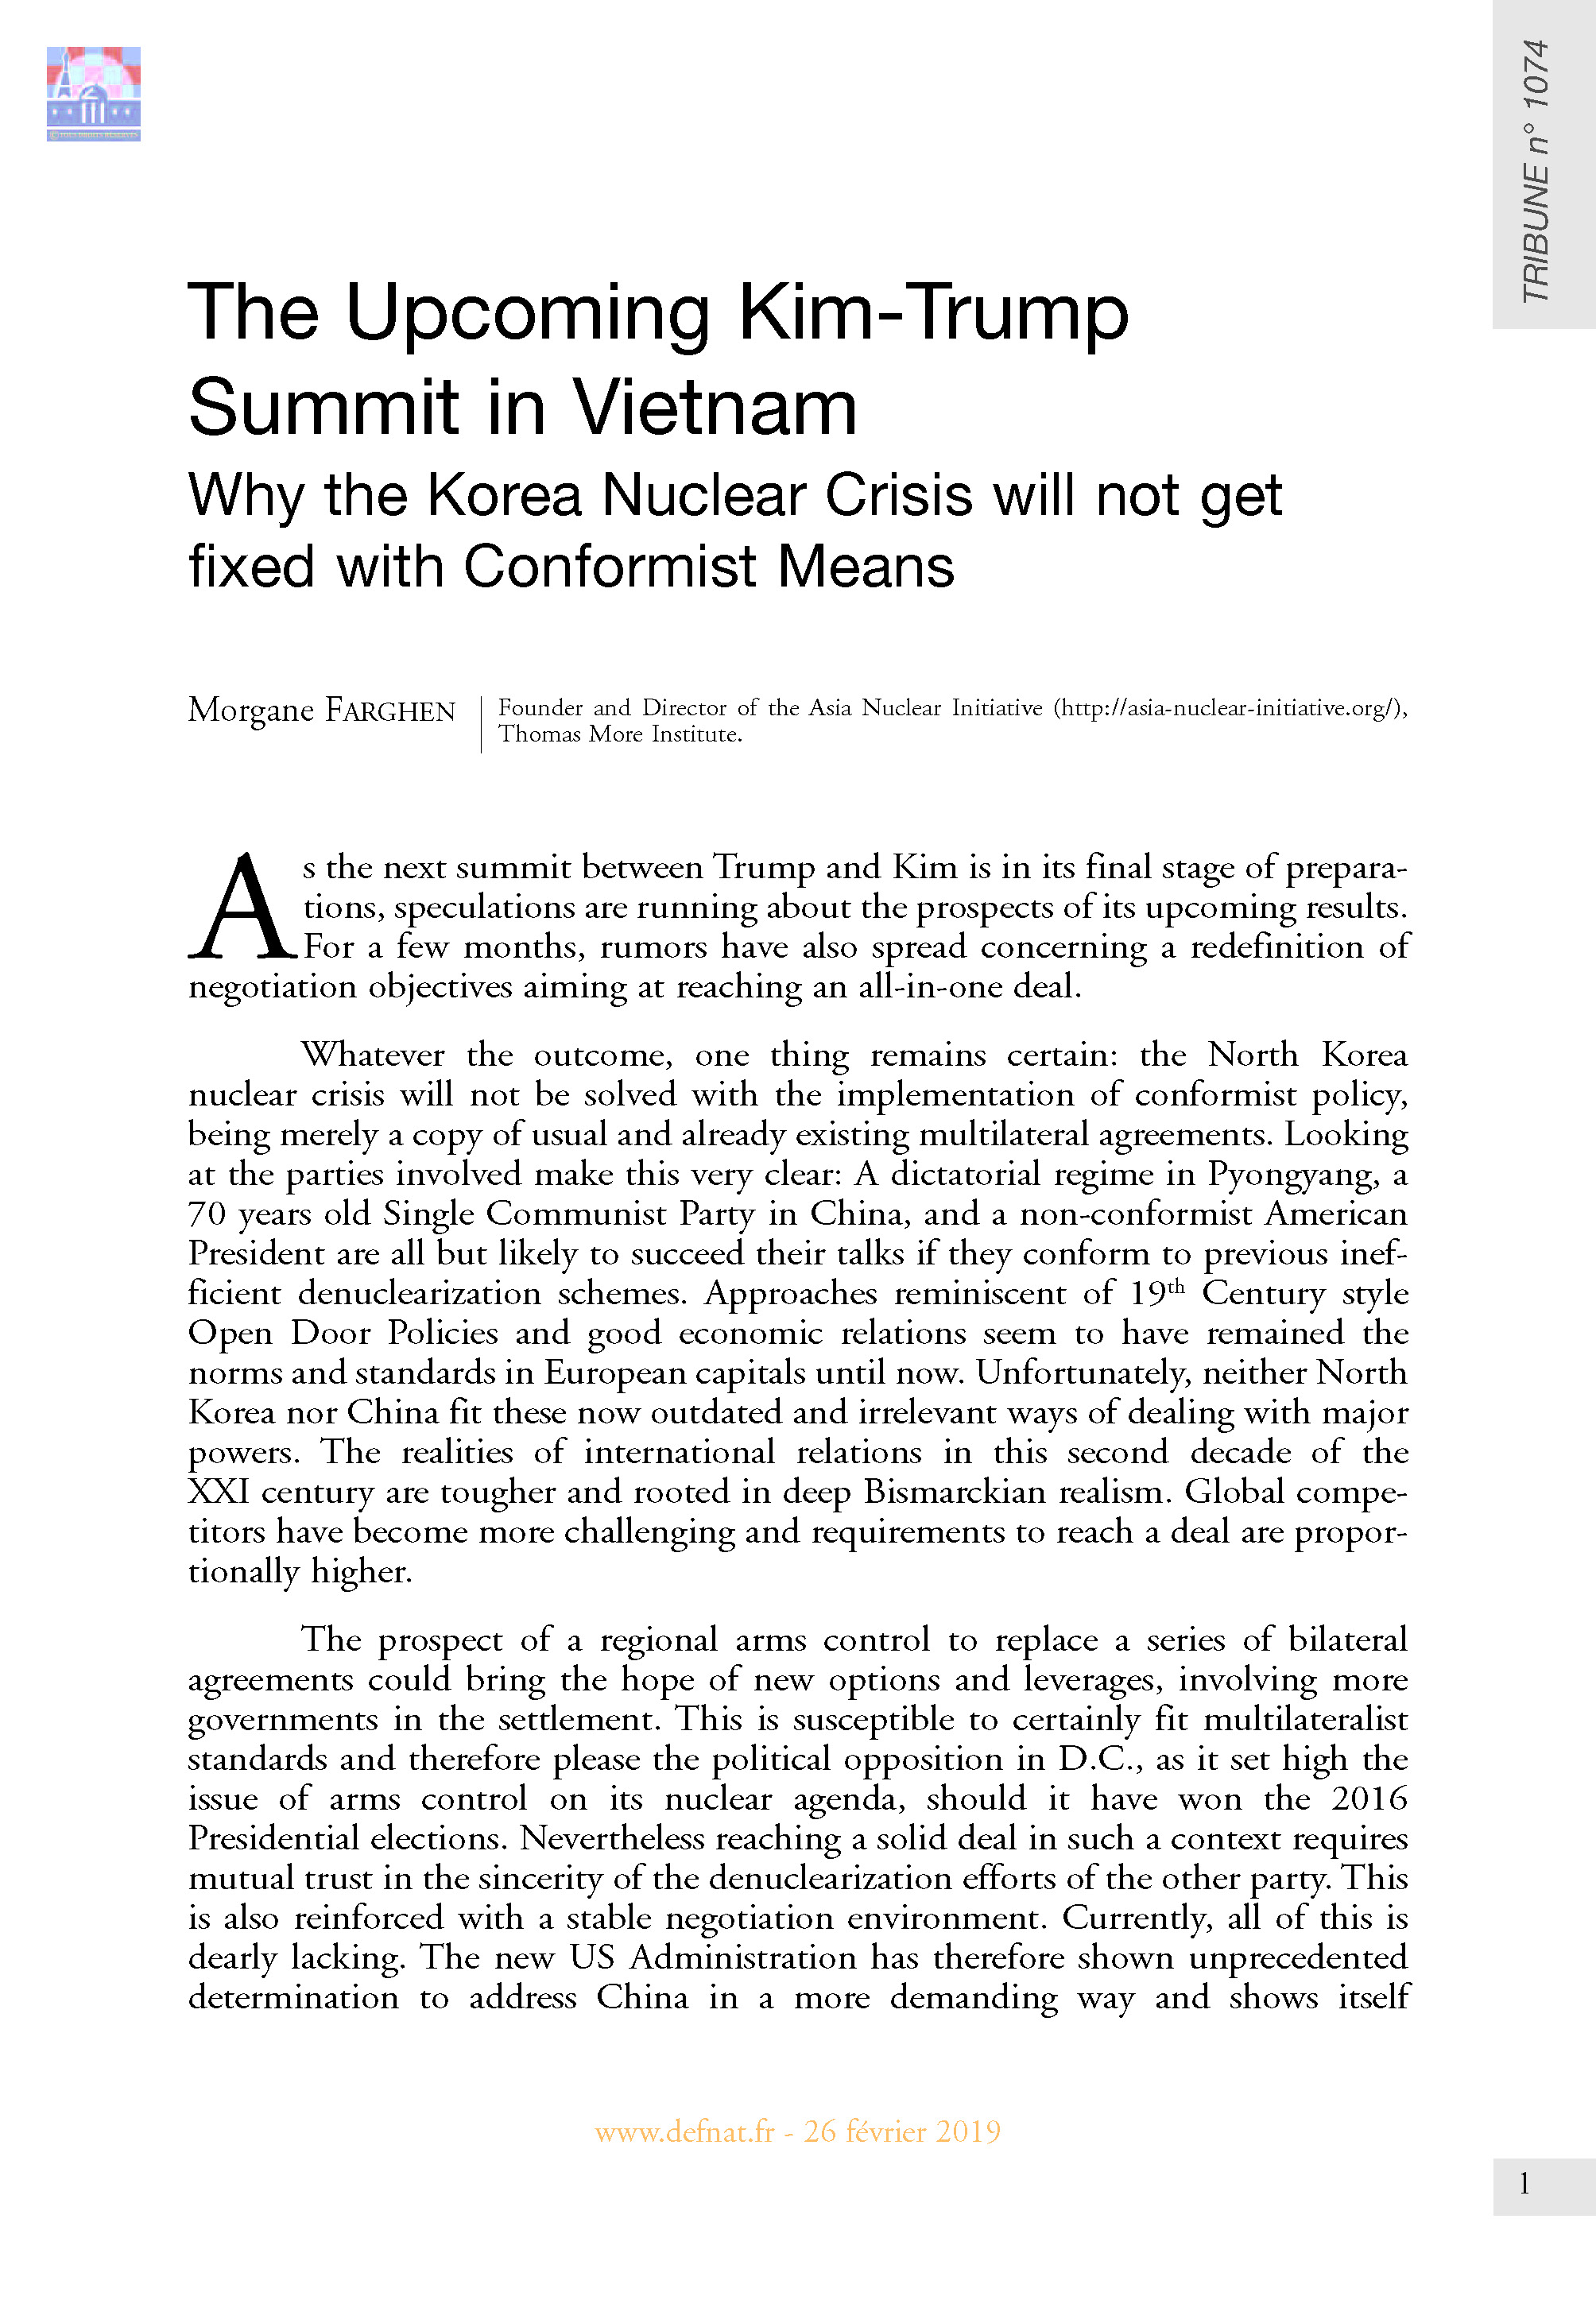 The Upcoming Kim-Trump Summit in Vietnam: Why the Korea Nuclear Crisis will not get fixed with Conformist Means (T 1074)